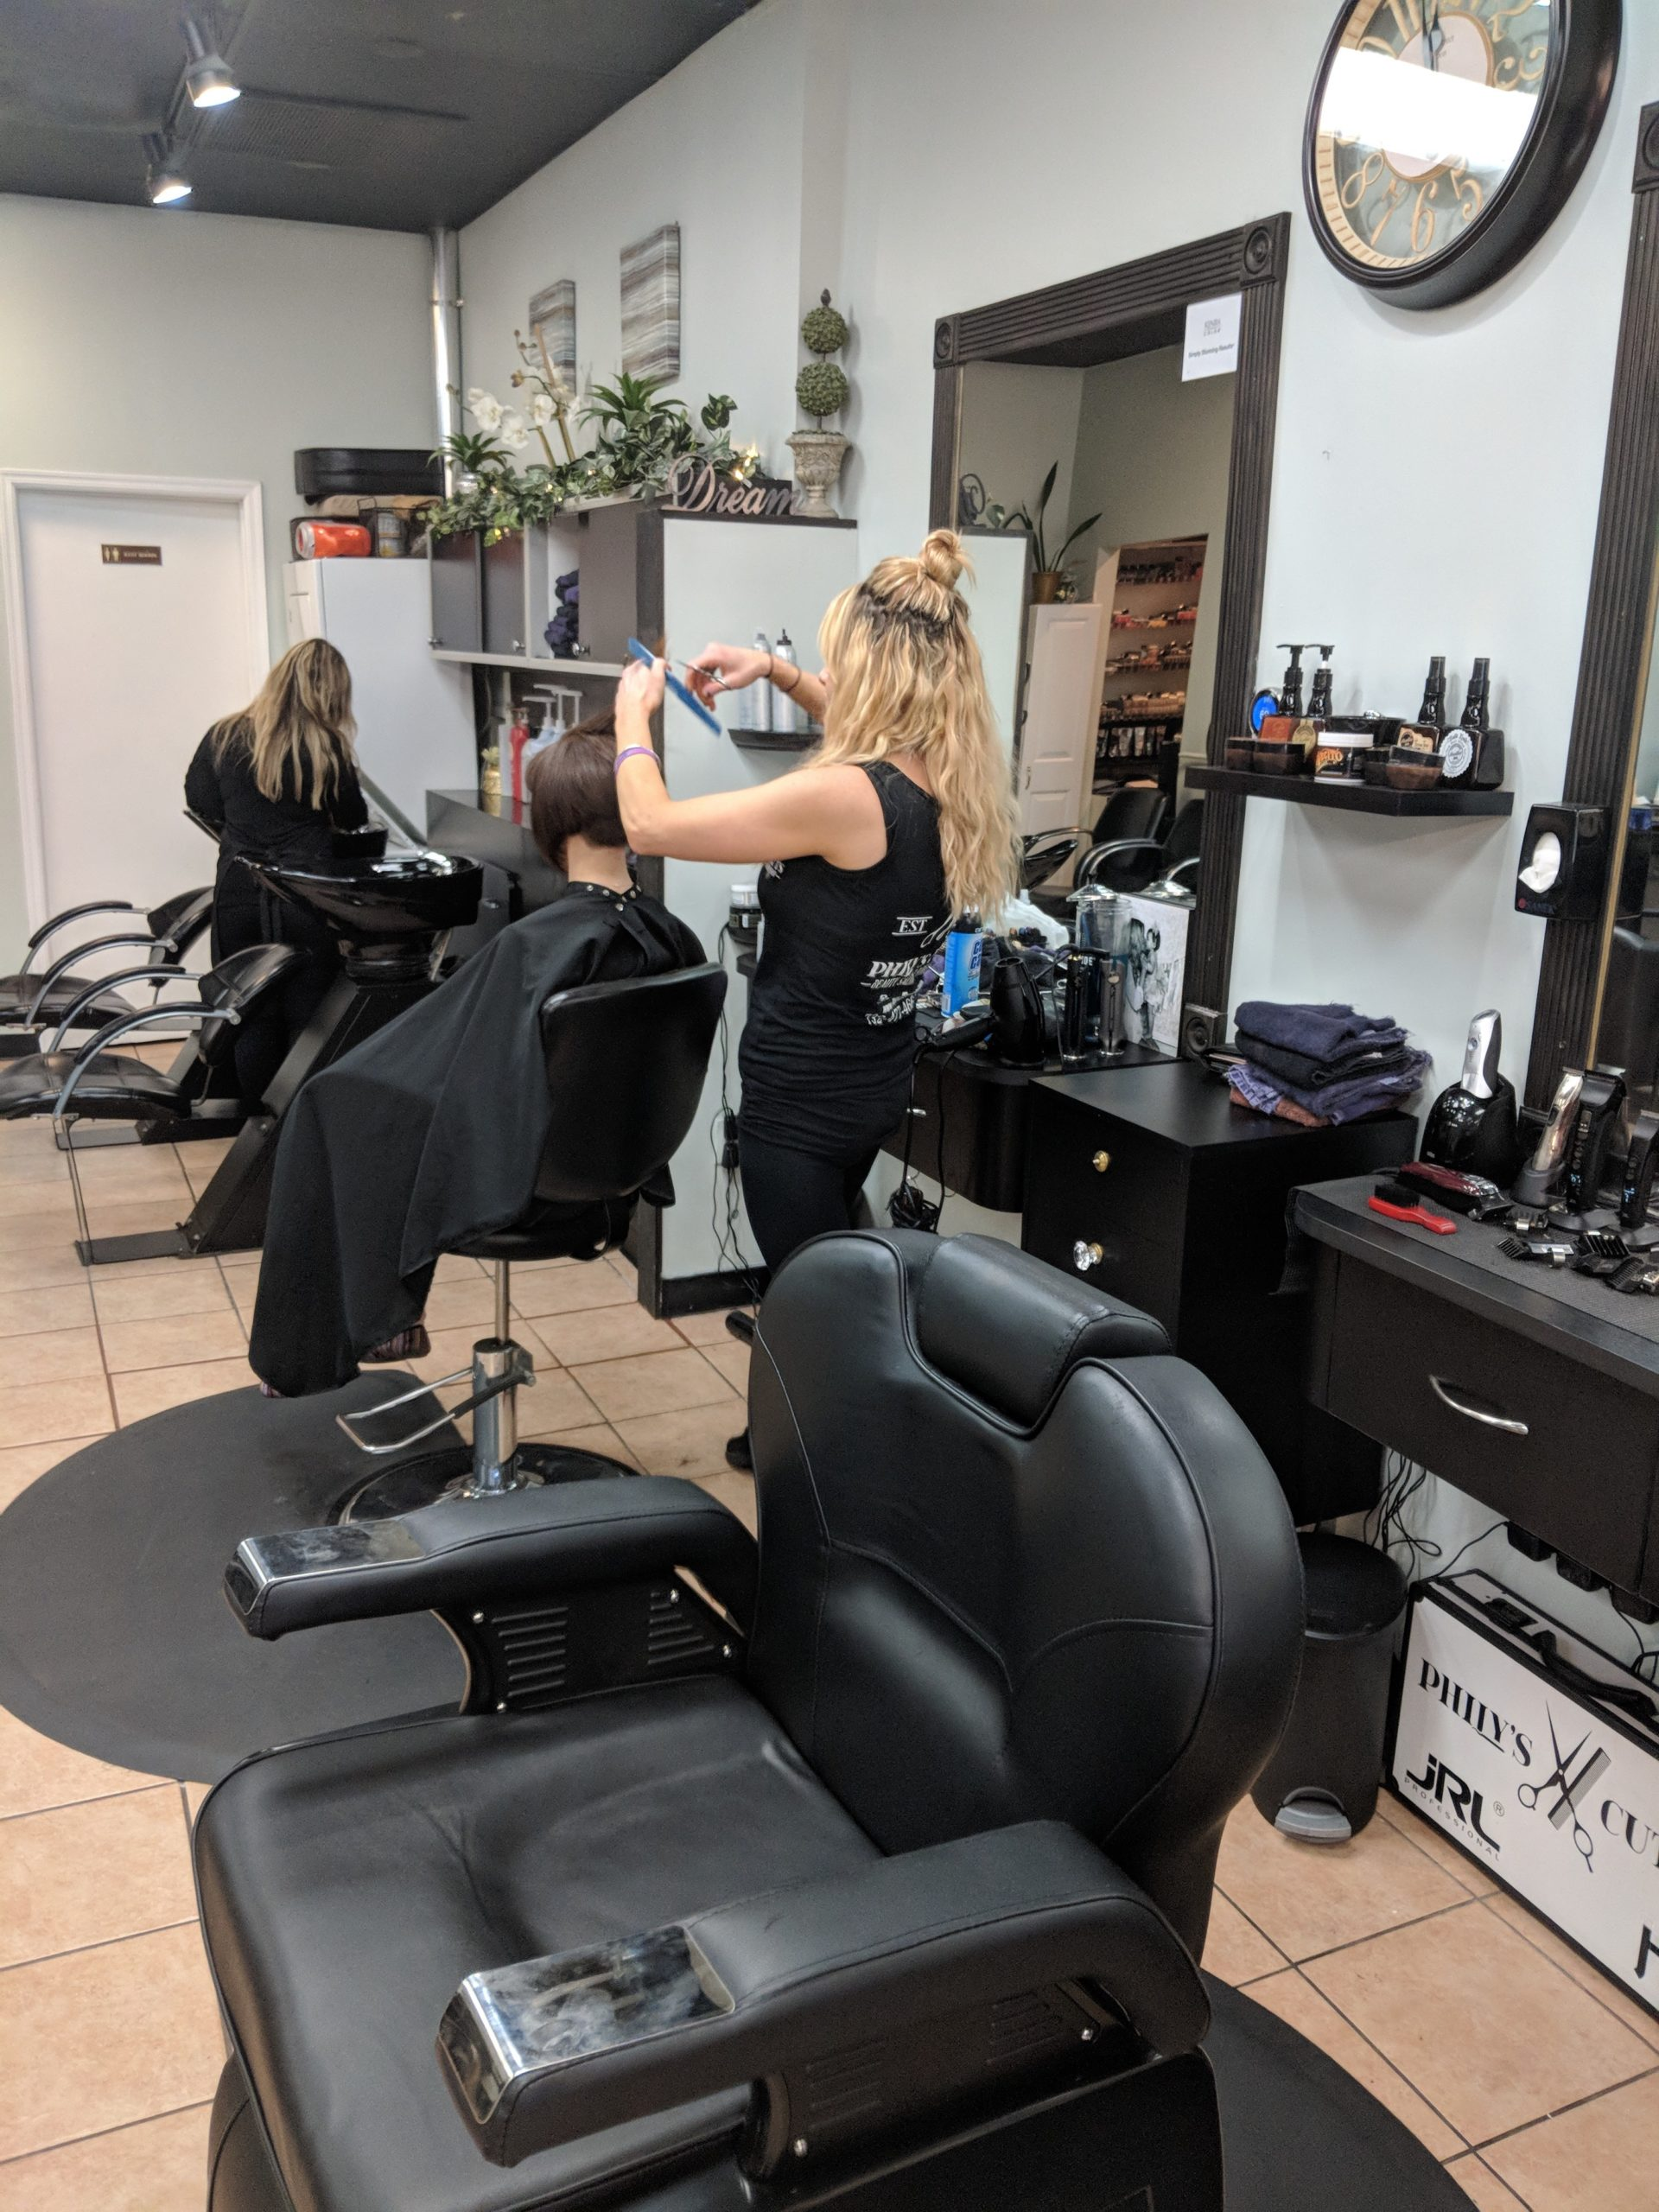 Phily's Cuts, Brick NJ, Stylists working, Cutting hair, hair, hairstyle, Women's grooming